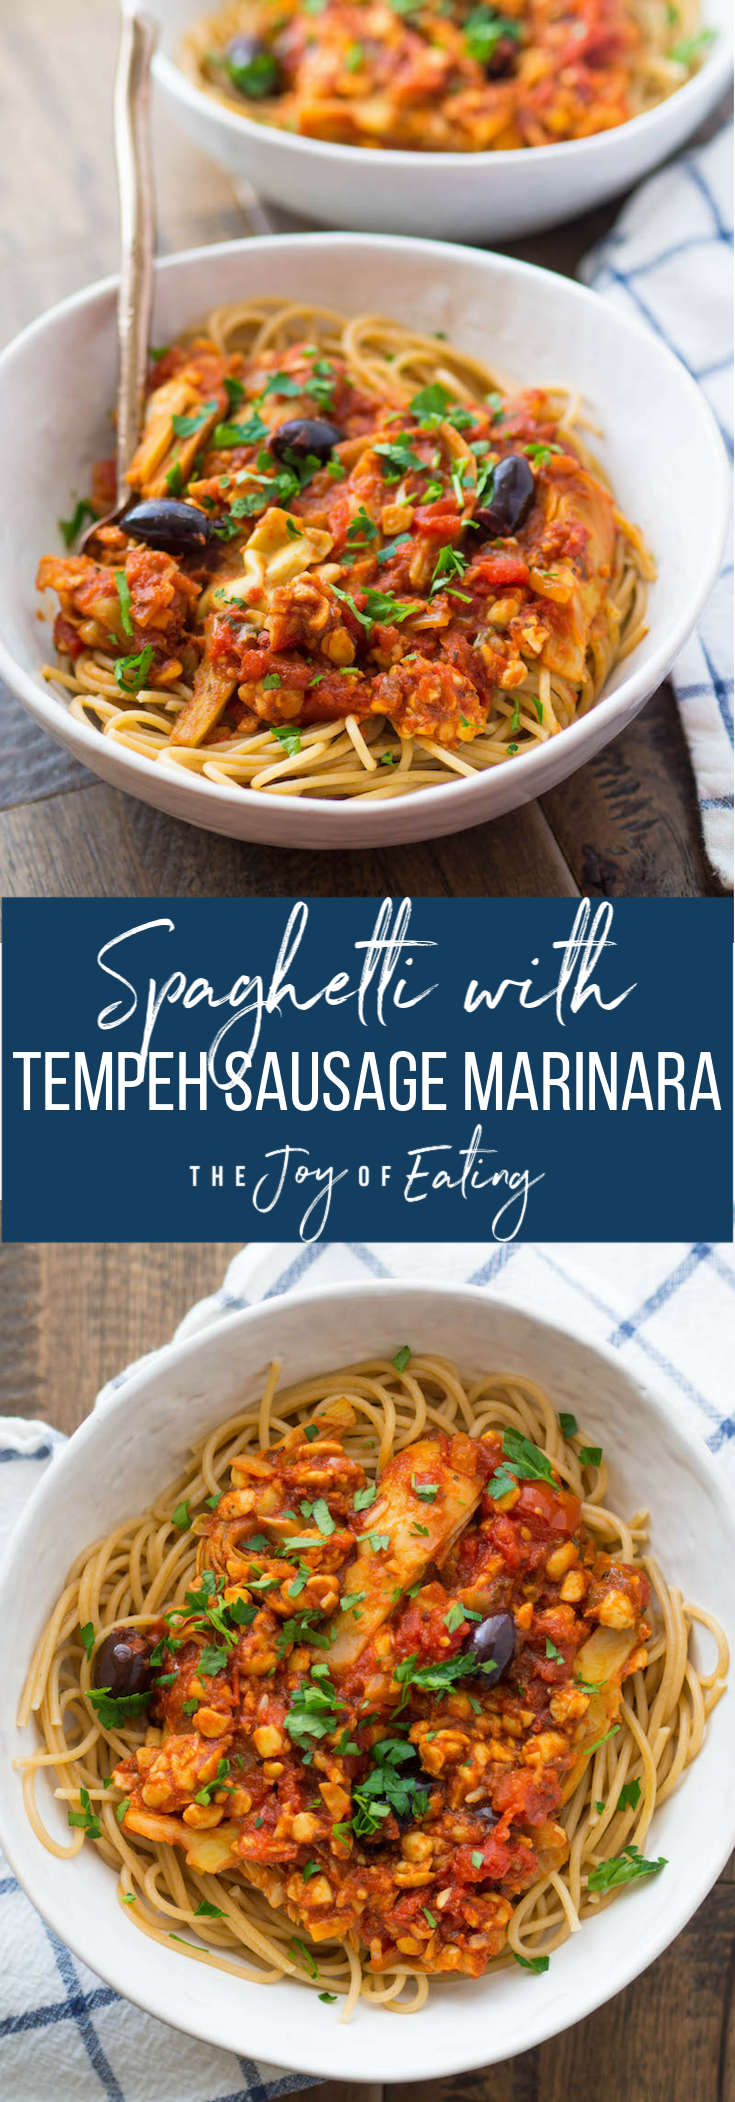 Spaghetti with Tempeh Sausage Marinara and Artichokes! It's a yummy, weeknight vegetarian pasta recipe! Takes less than 30 minutes hands on time! #pasta #tempeh #vegetarian #vegan #recipe #healthy